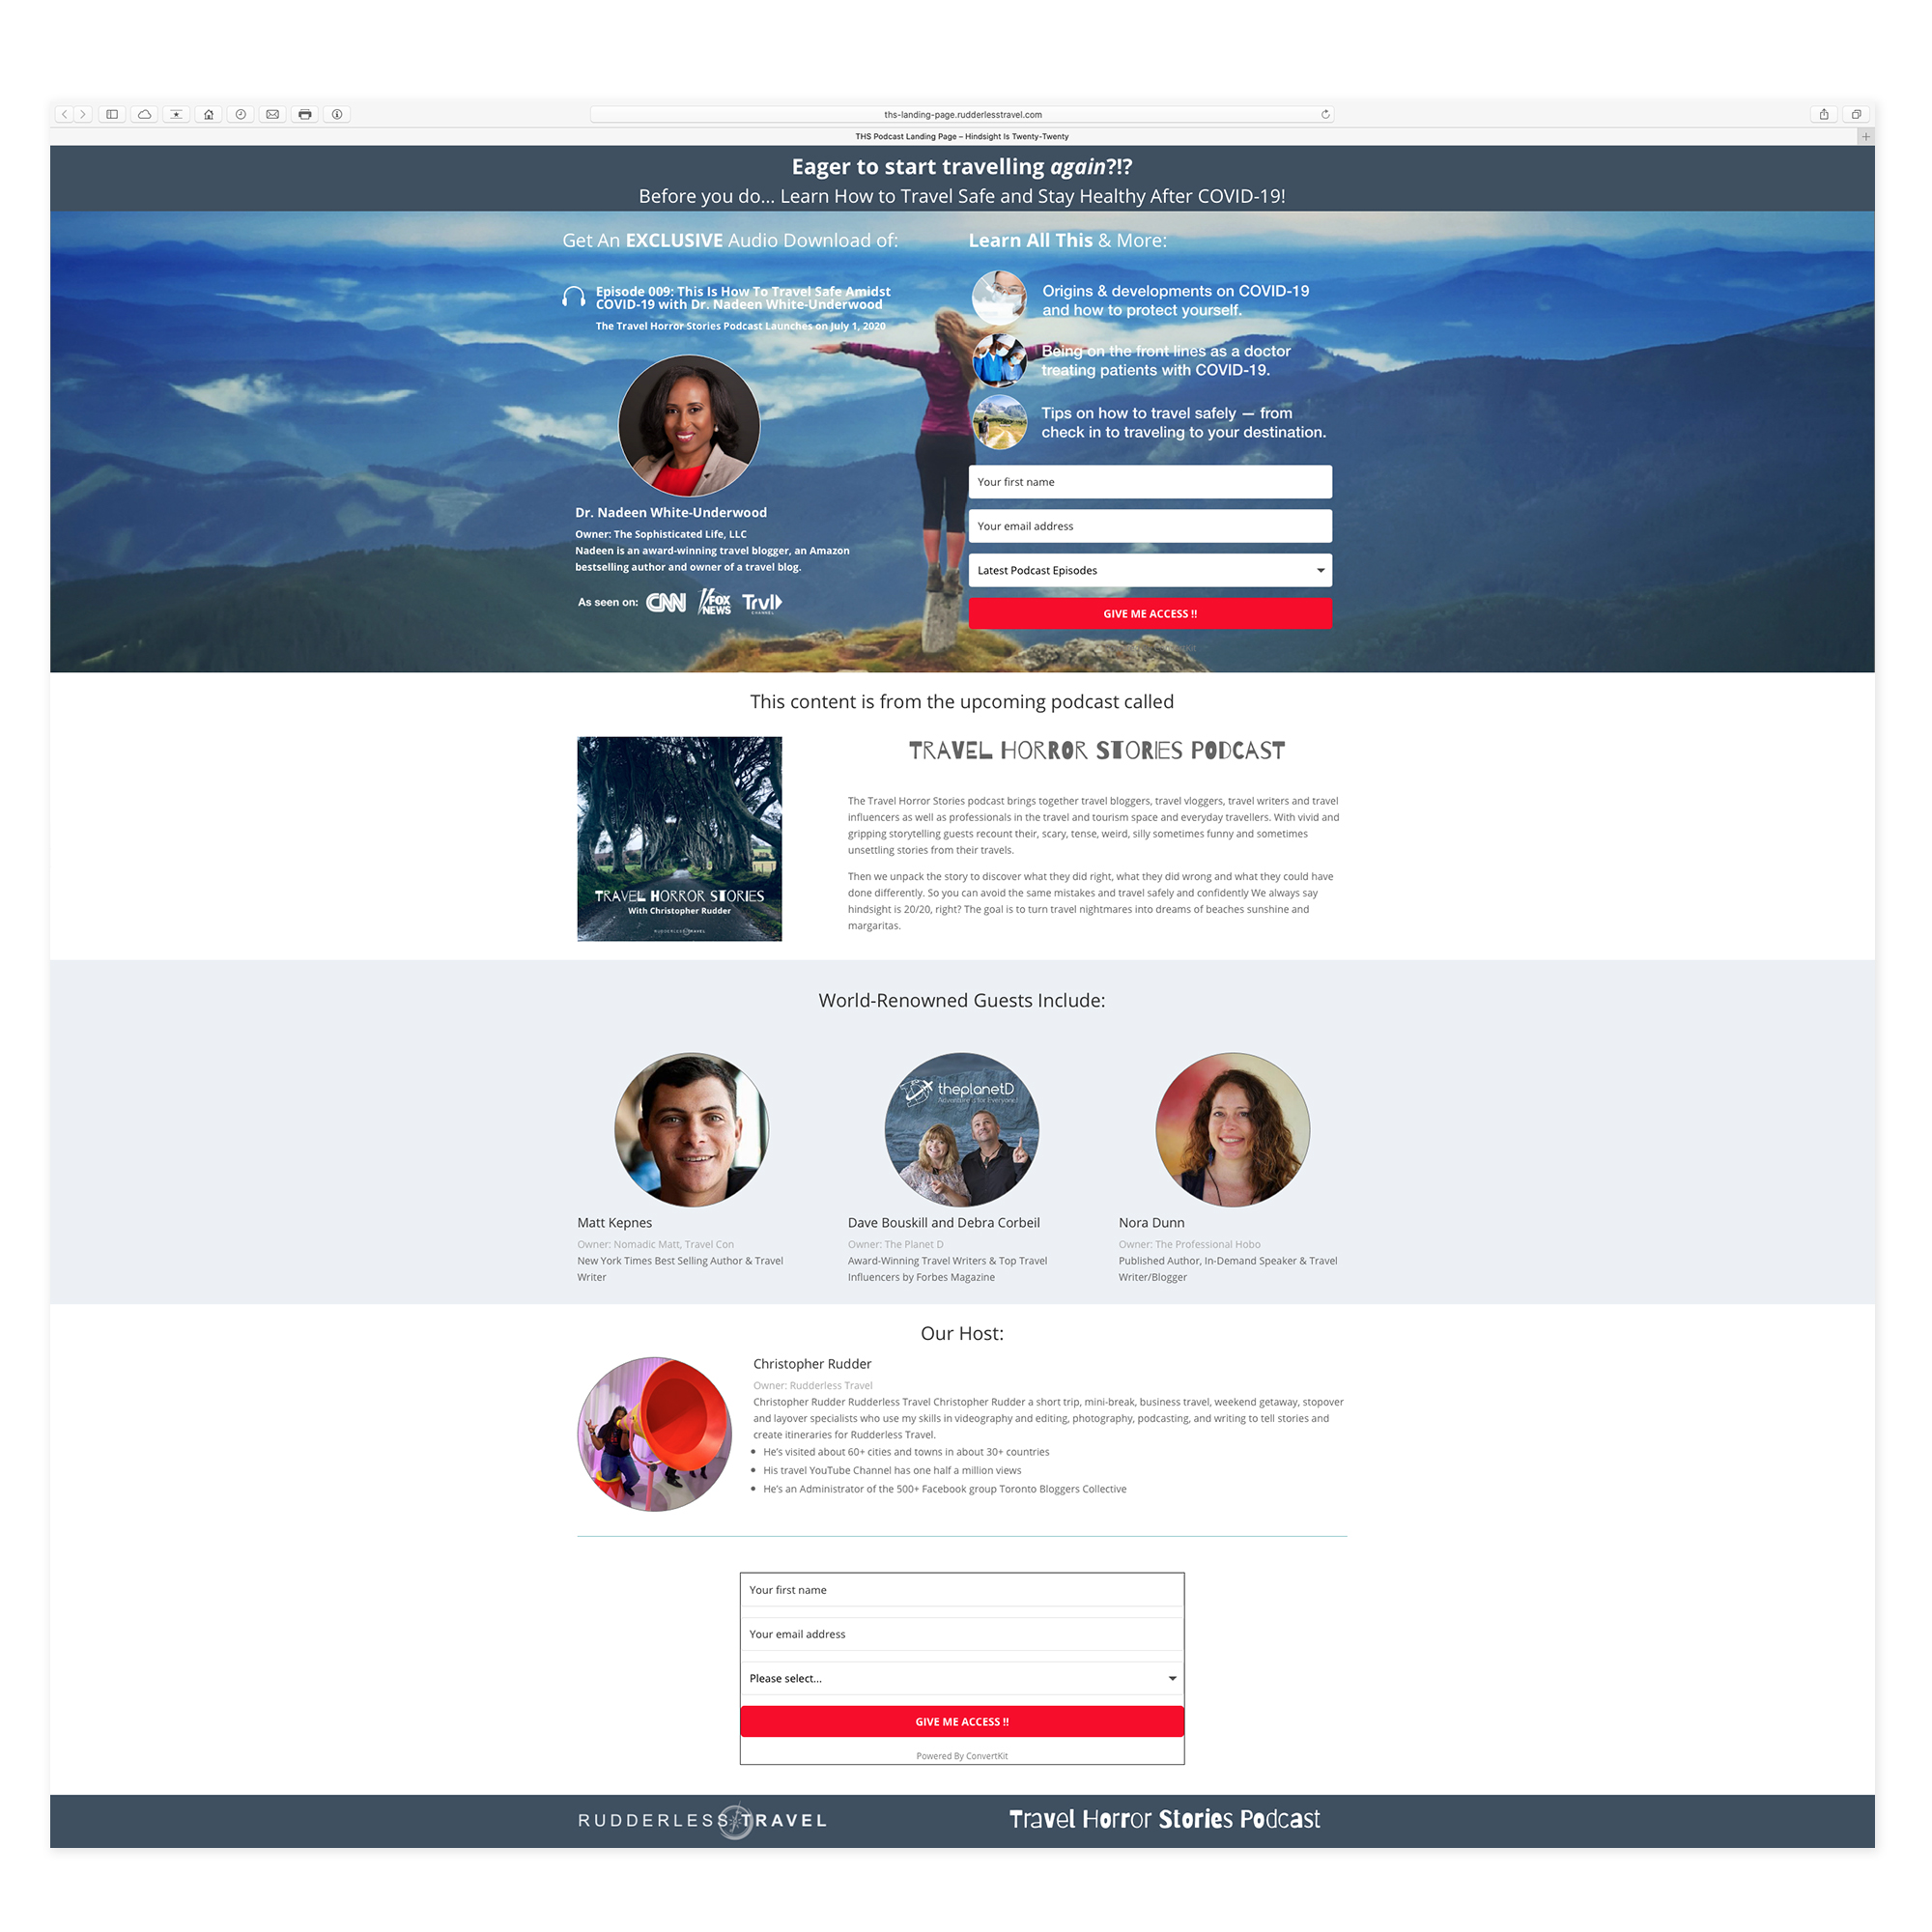 Rudderless Travel - Landing Pages